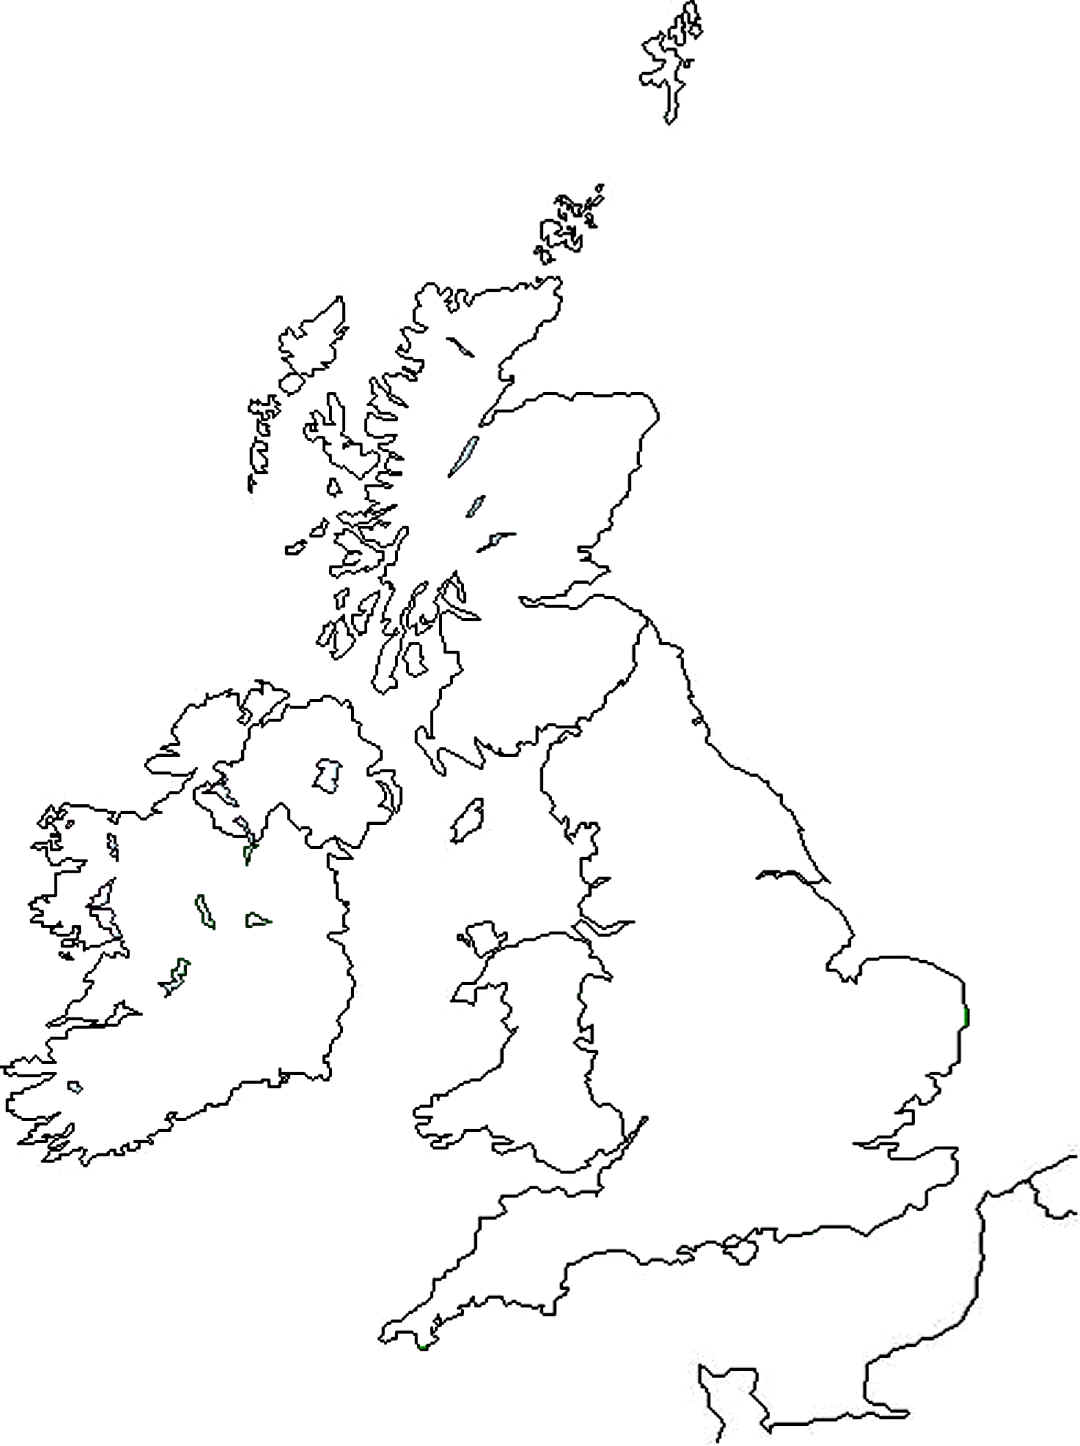 Blank Map Of England Scotland And Wales.Astakos State Primary School Scuola Primaria Statale Di